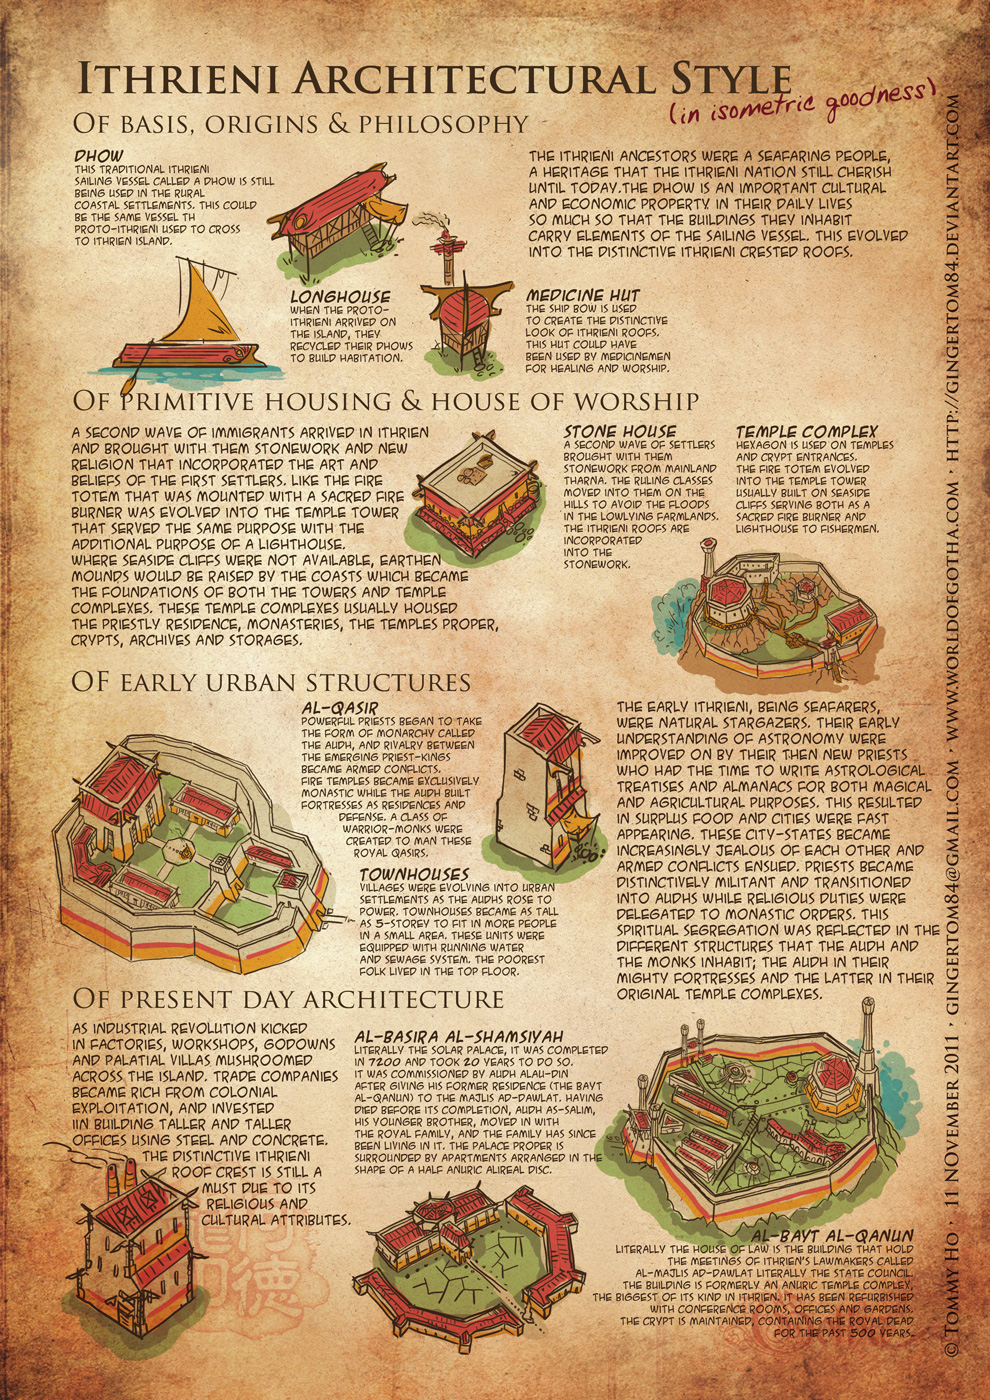 Ithrieni Architecture Diagram by gingertom84